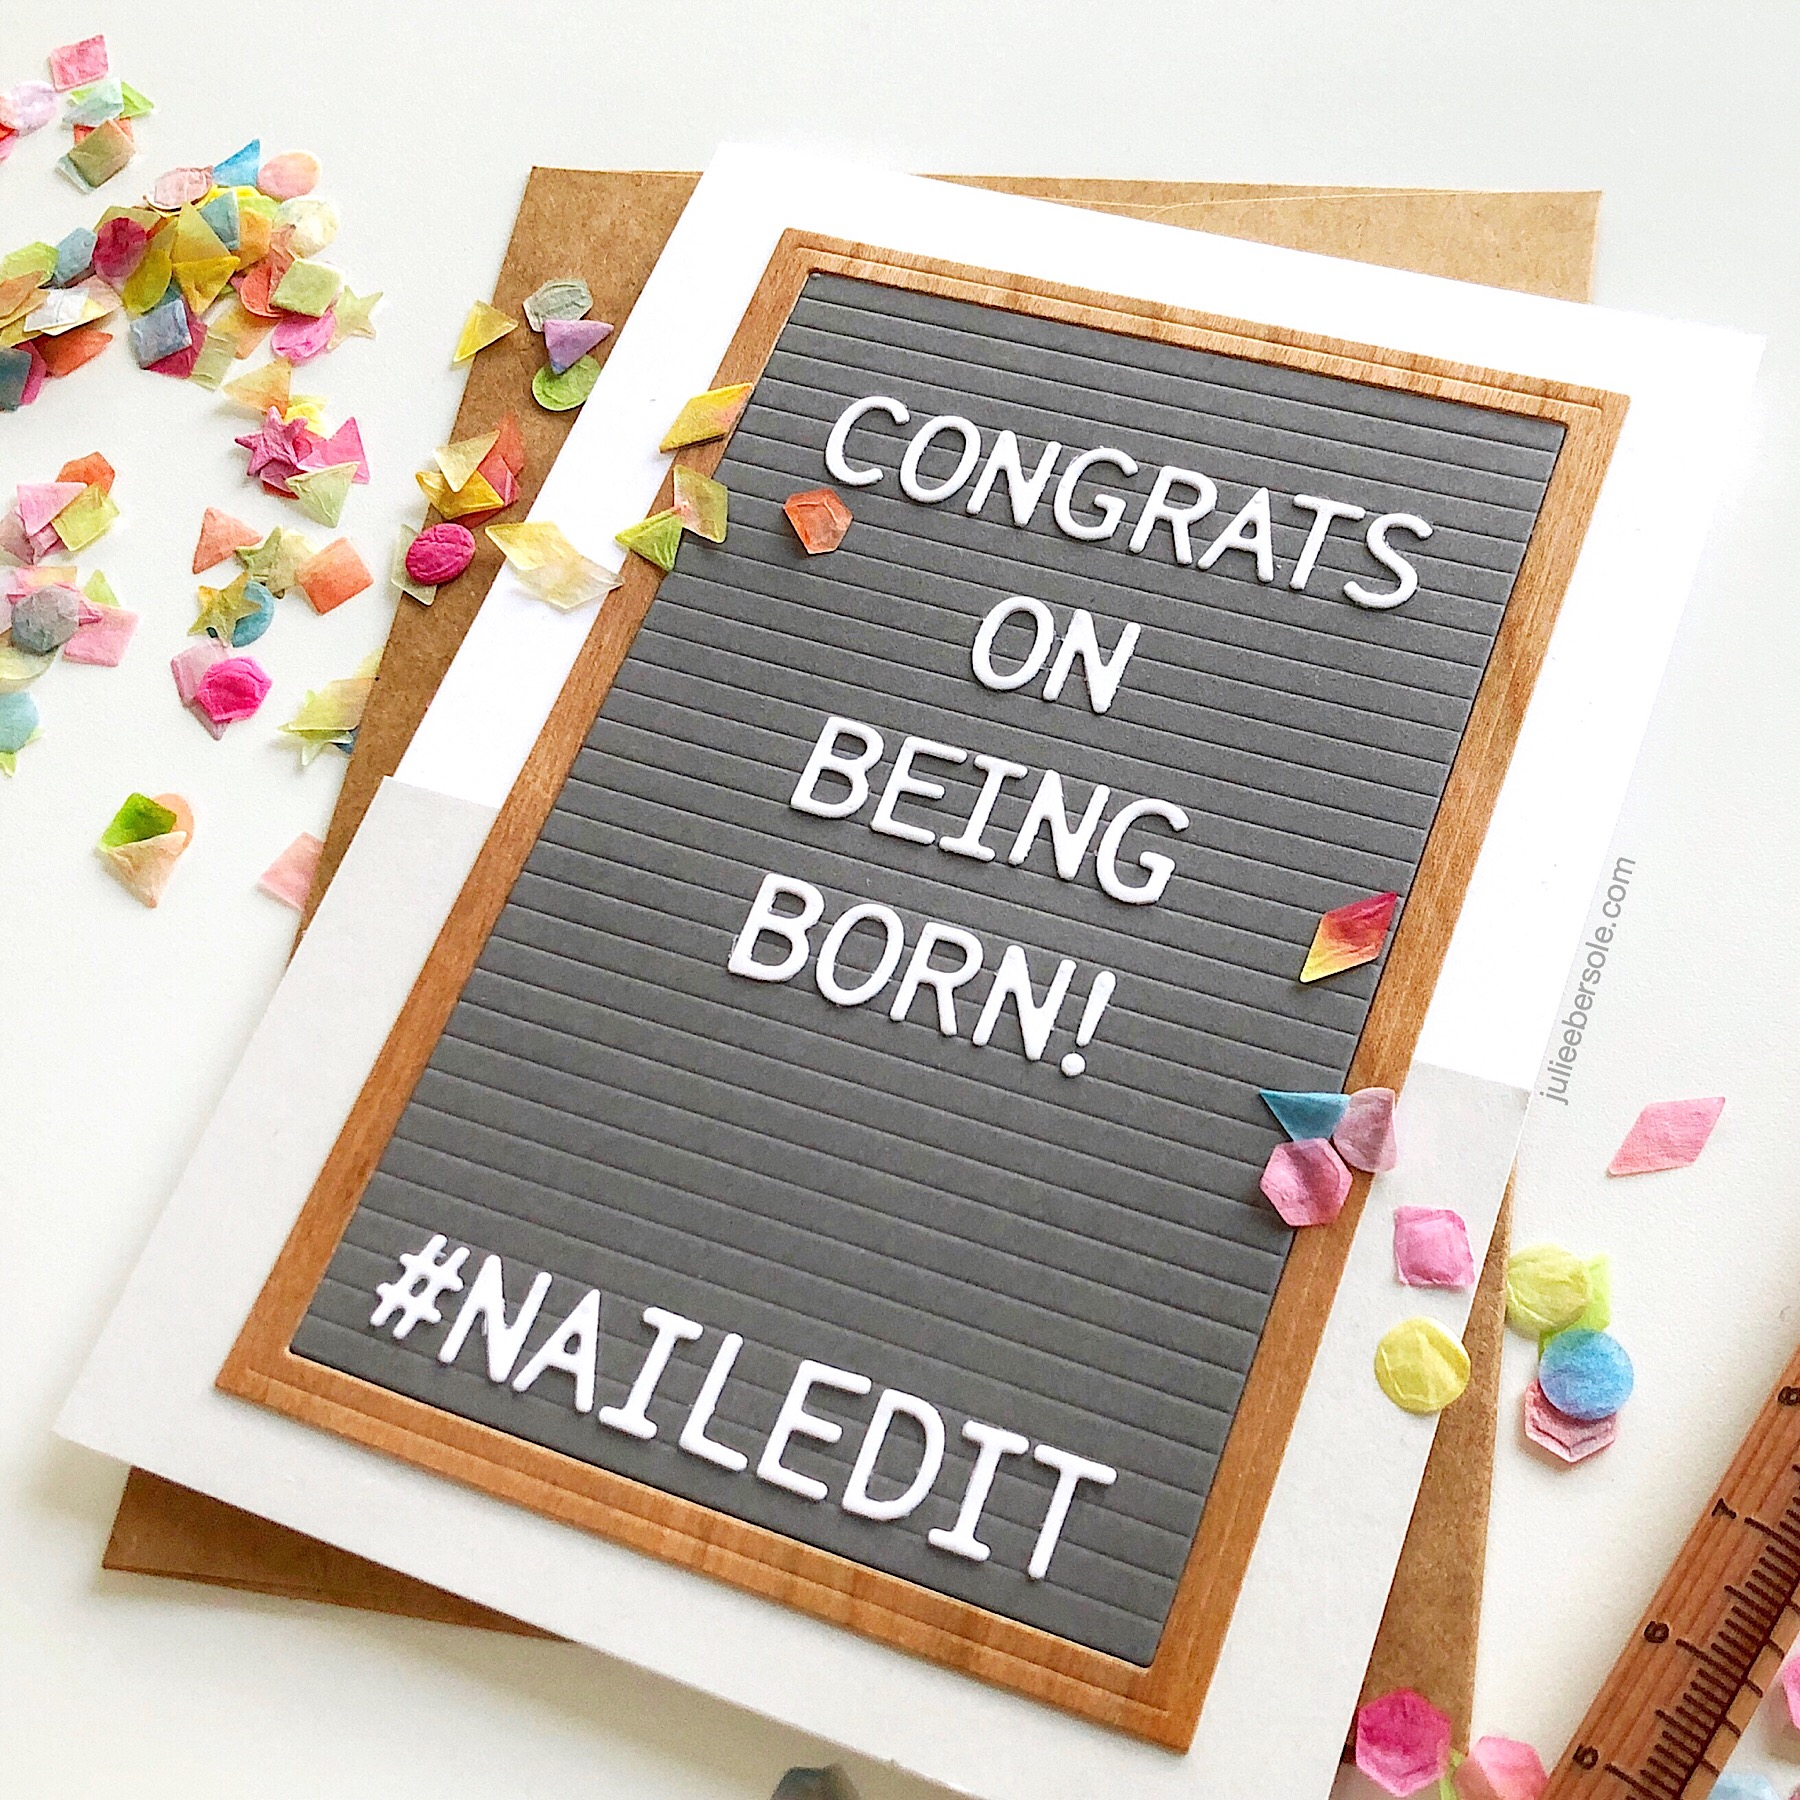 letterboard-being-born-001-2.jpg